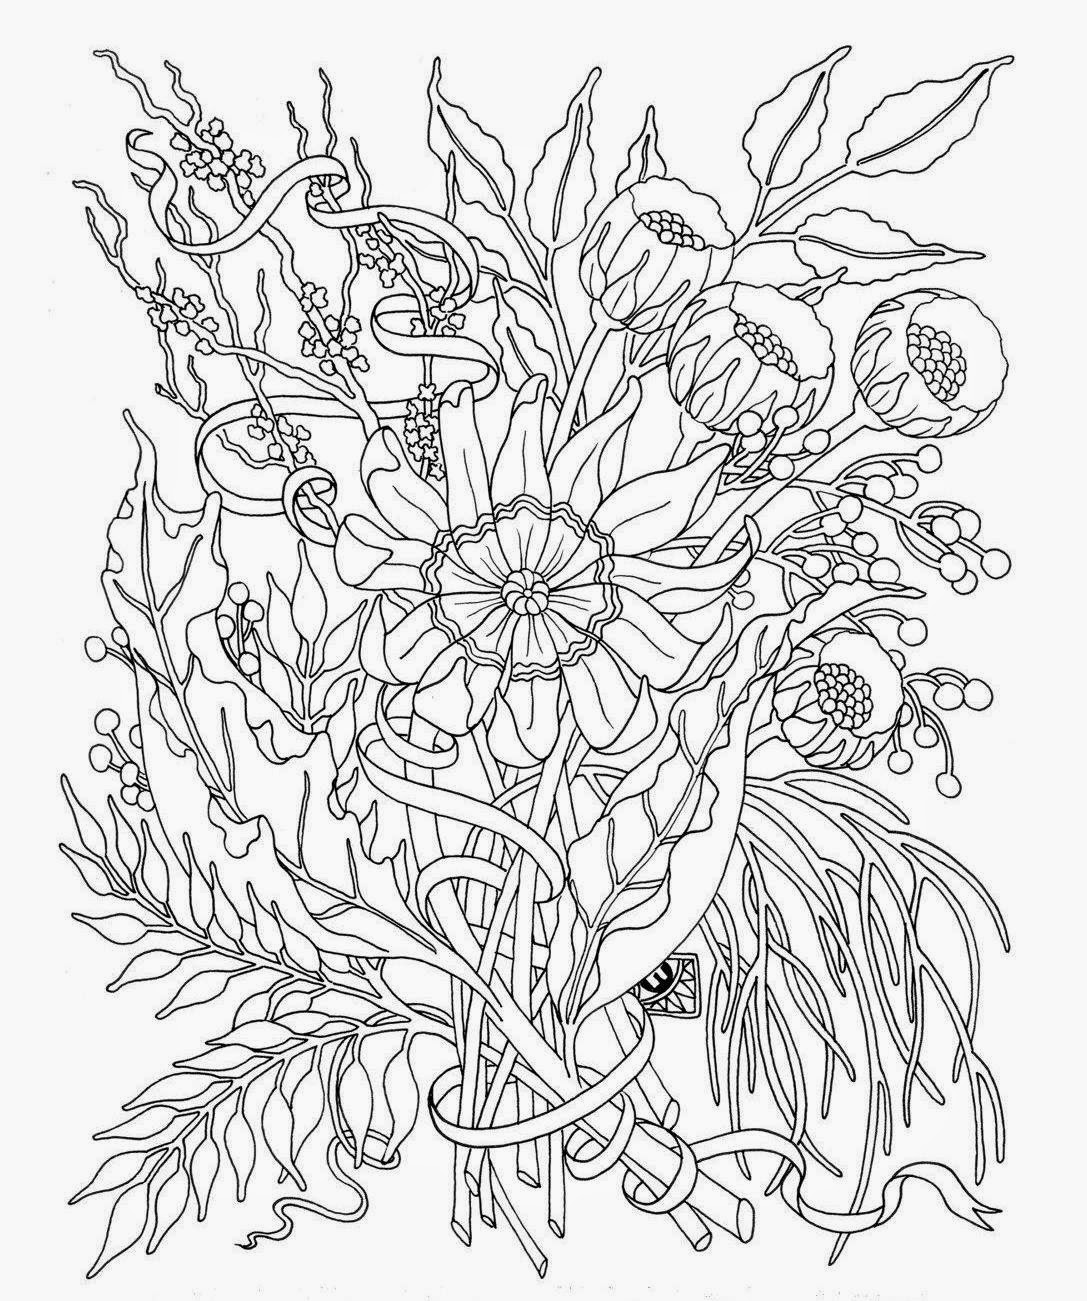 coloring pages for tweens coloring town coloring for pages tweens